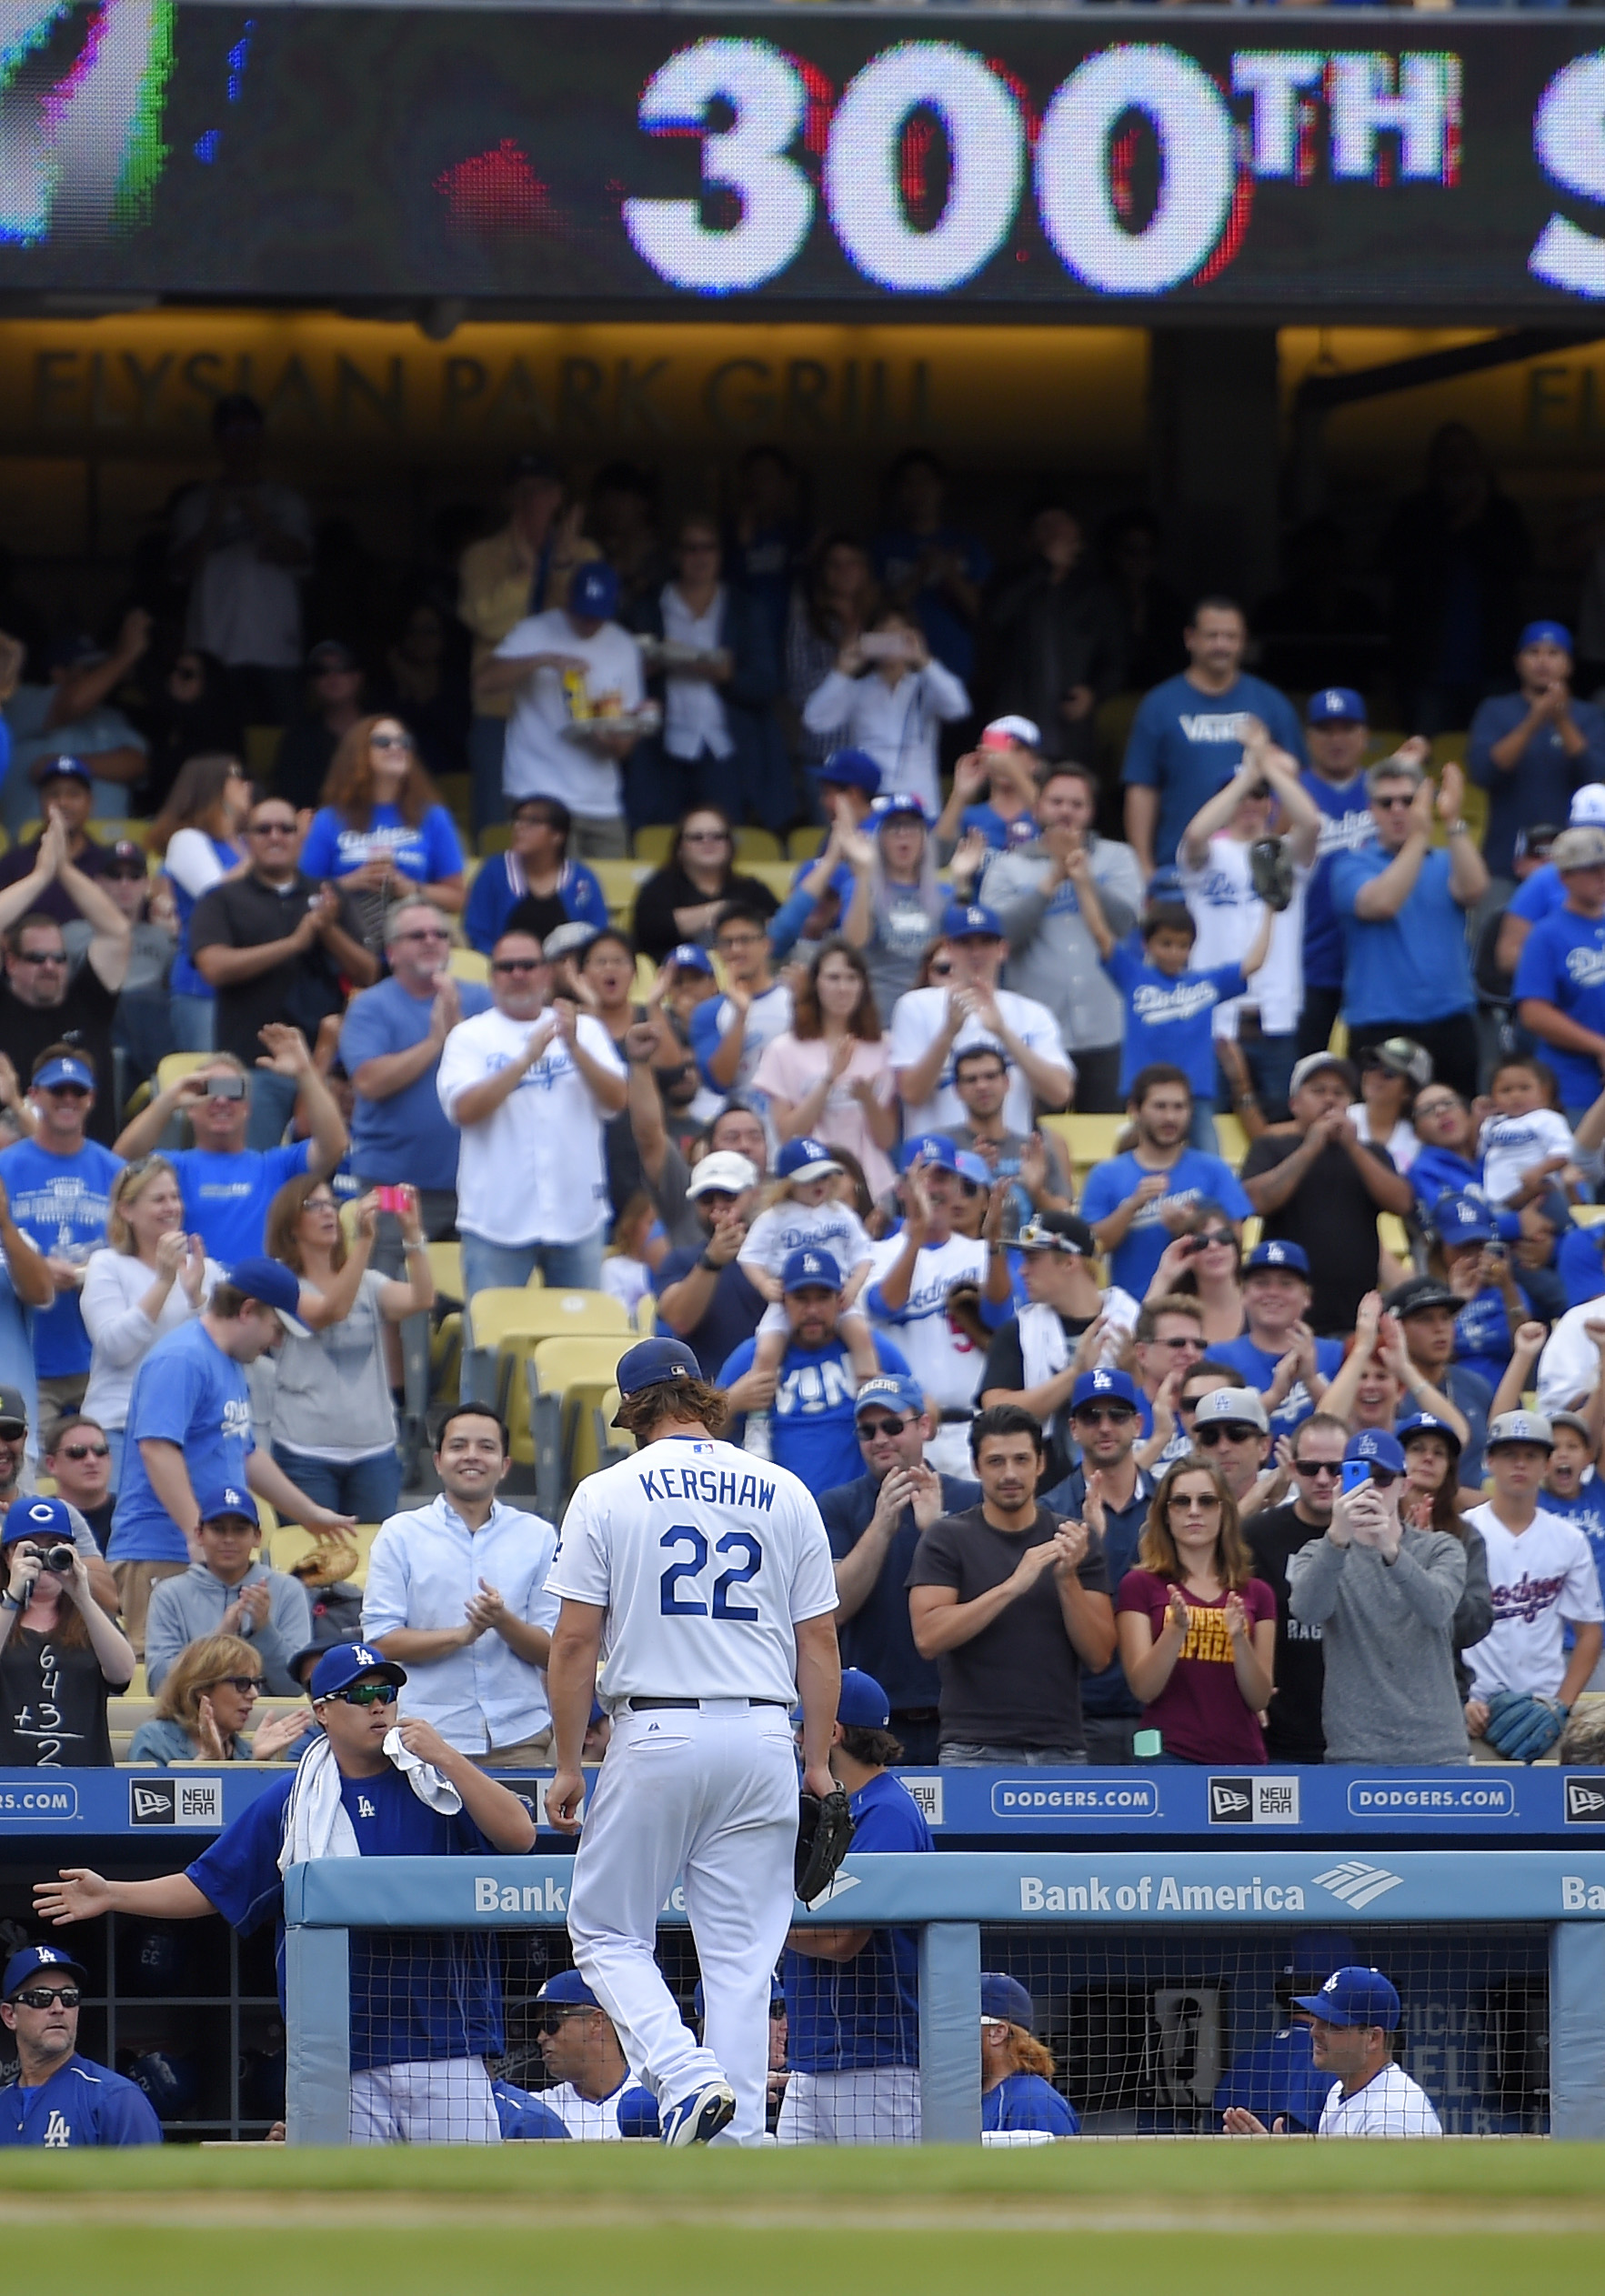 Los Angeles Dodgers starting pitcher Clayton Kershaw walks off the field after pitching his 300th seasonal strikeout in the third inning of a baseball game against the San Diego Padres, Sunday, Oct. 4, 2015, in Los Angeles. (AP Photo/Mark J. Terrill)